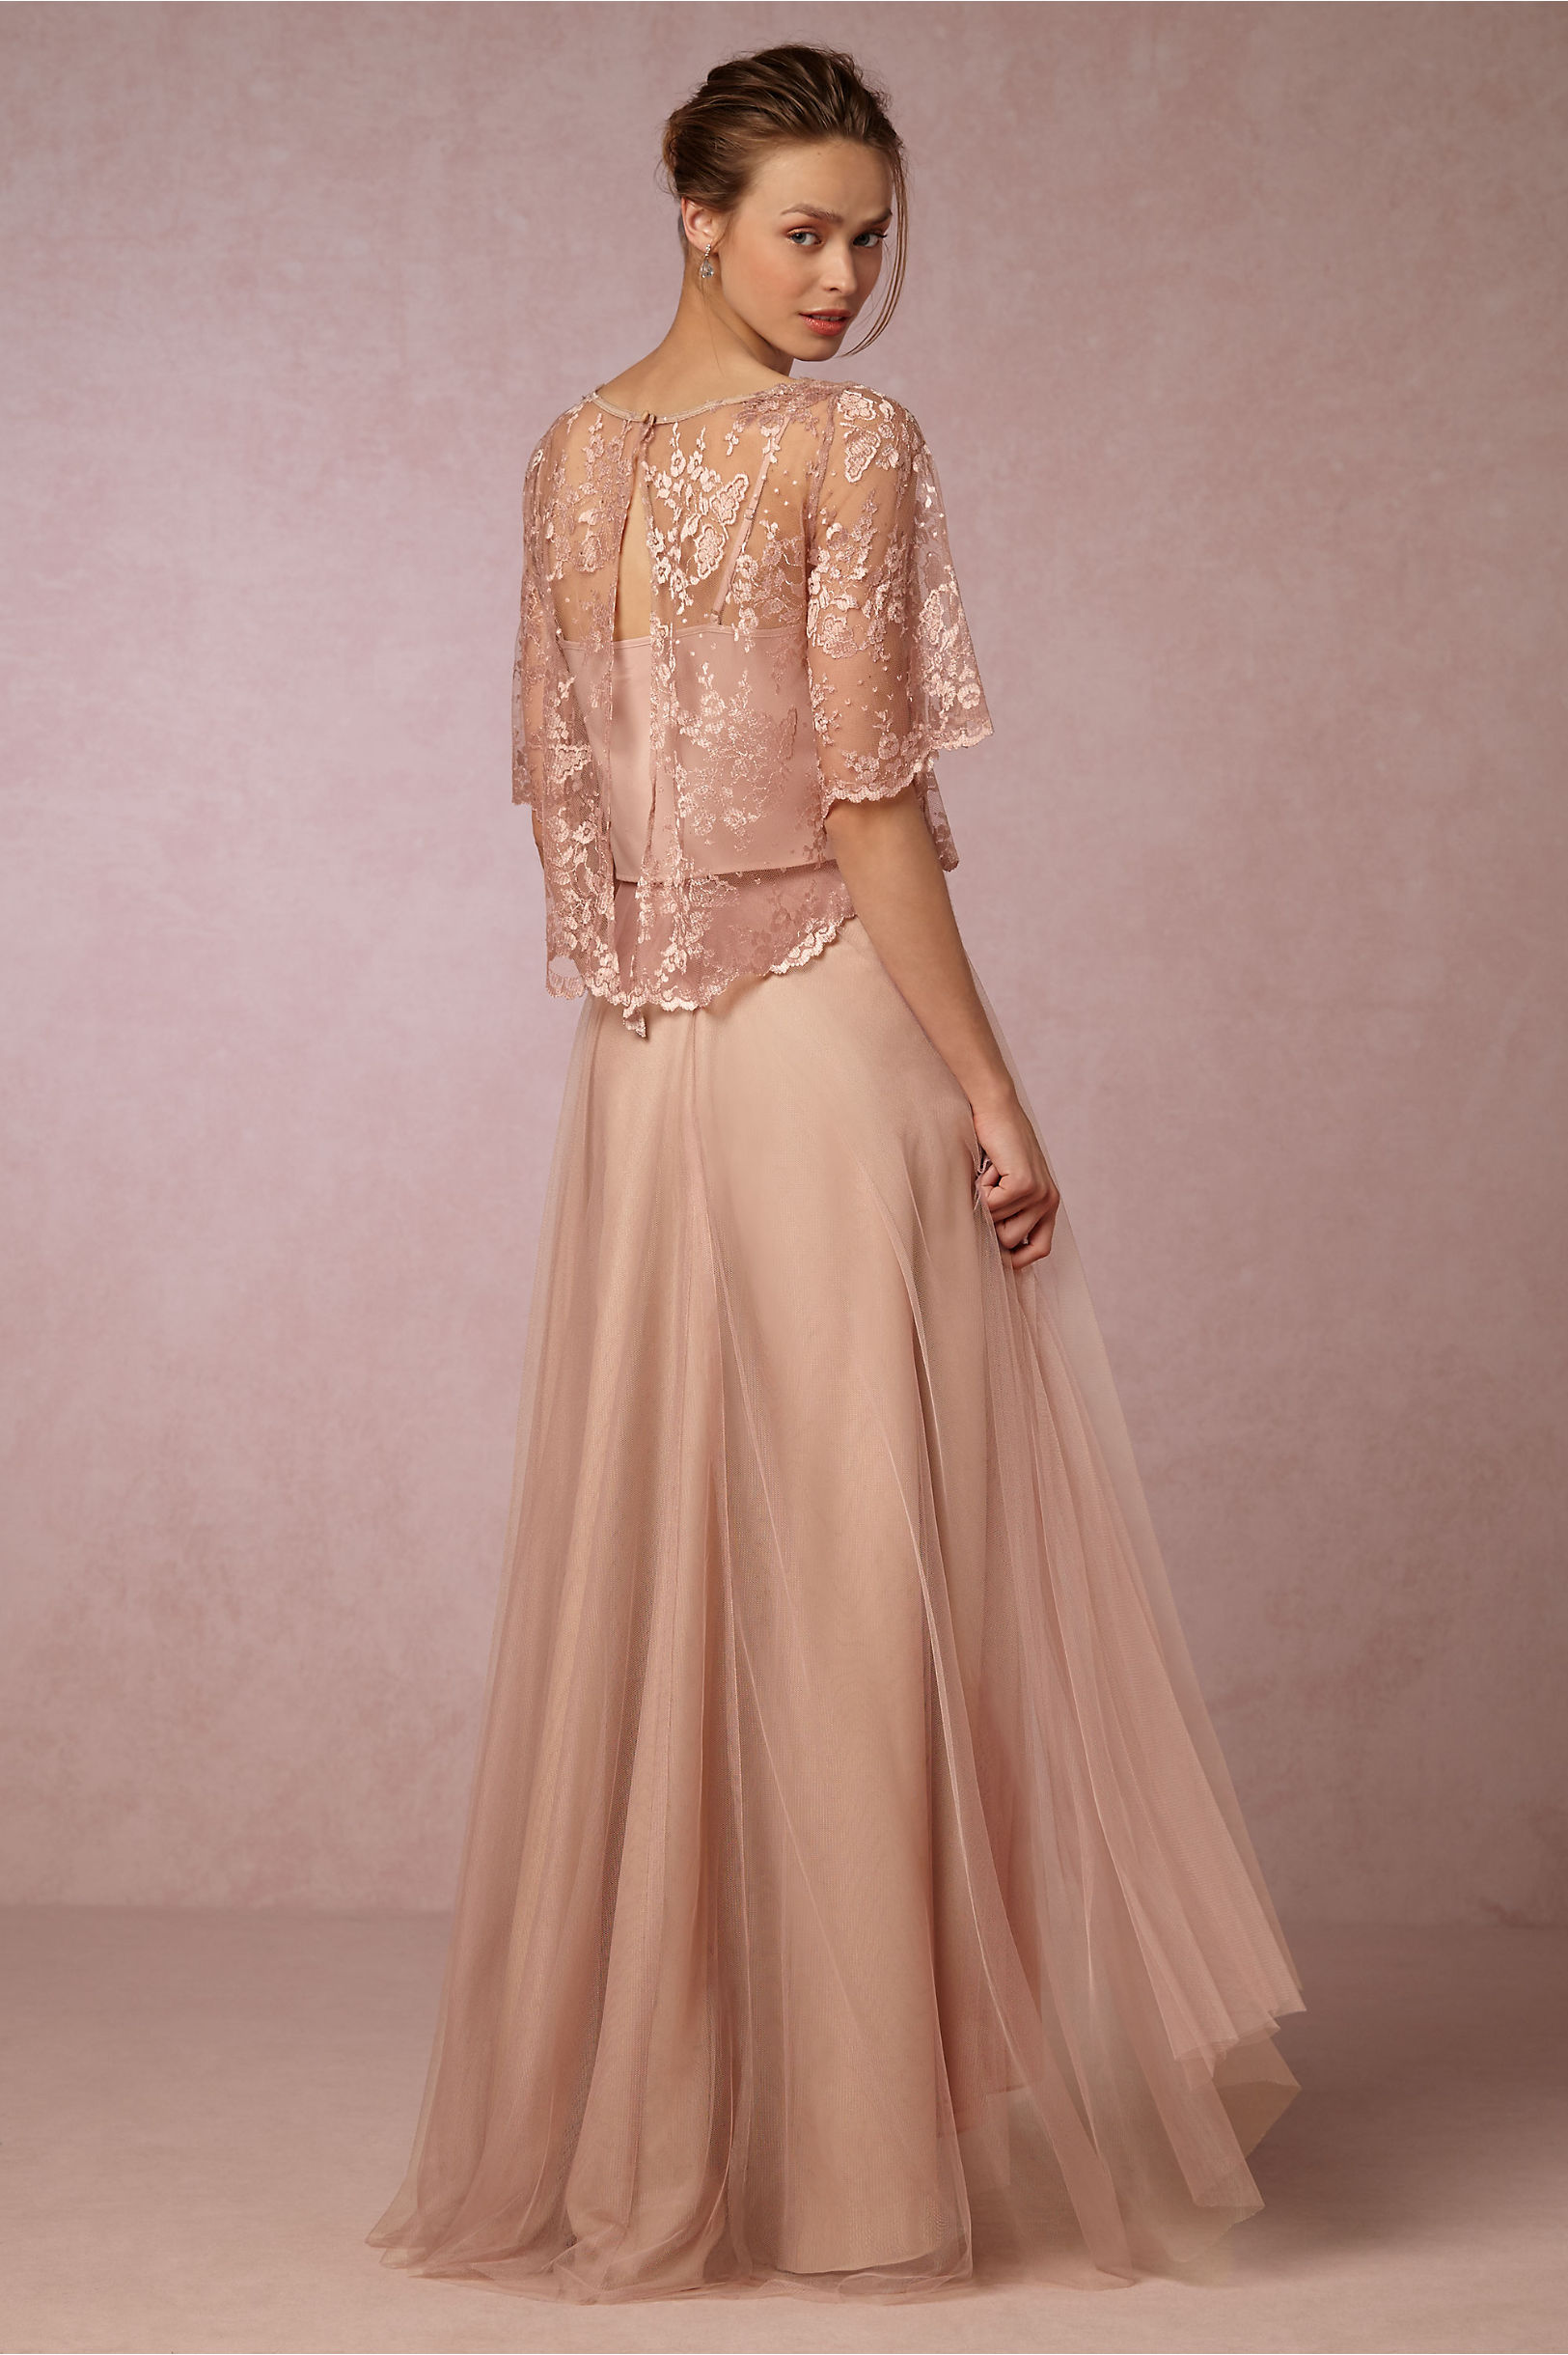 Embry top petal skirt in bridal party bhldn embry top petal skirt bhldn ombrellifo Image collections